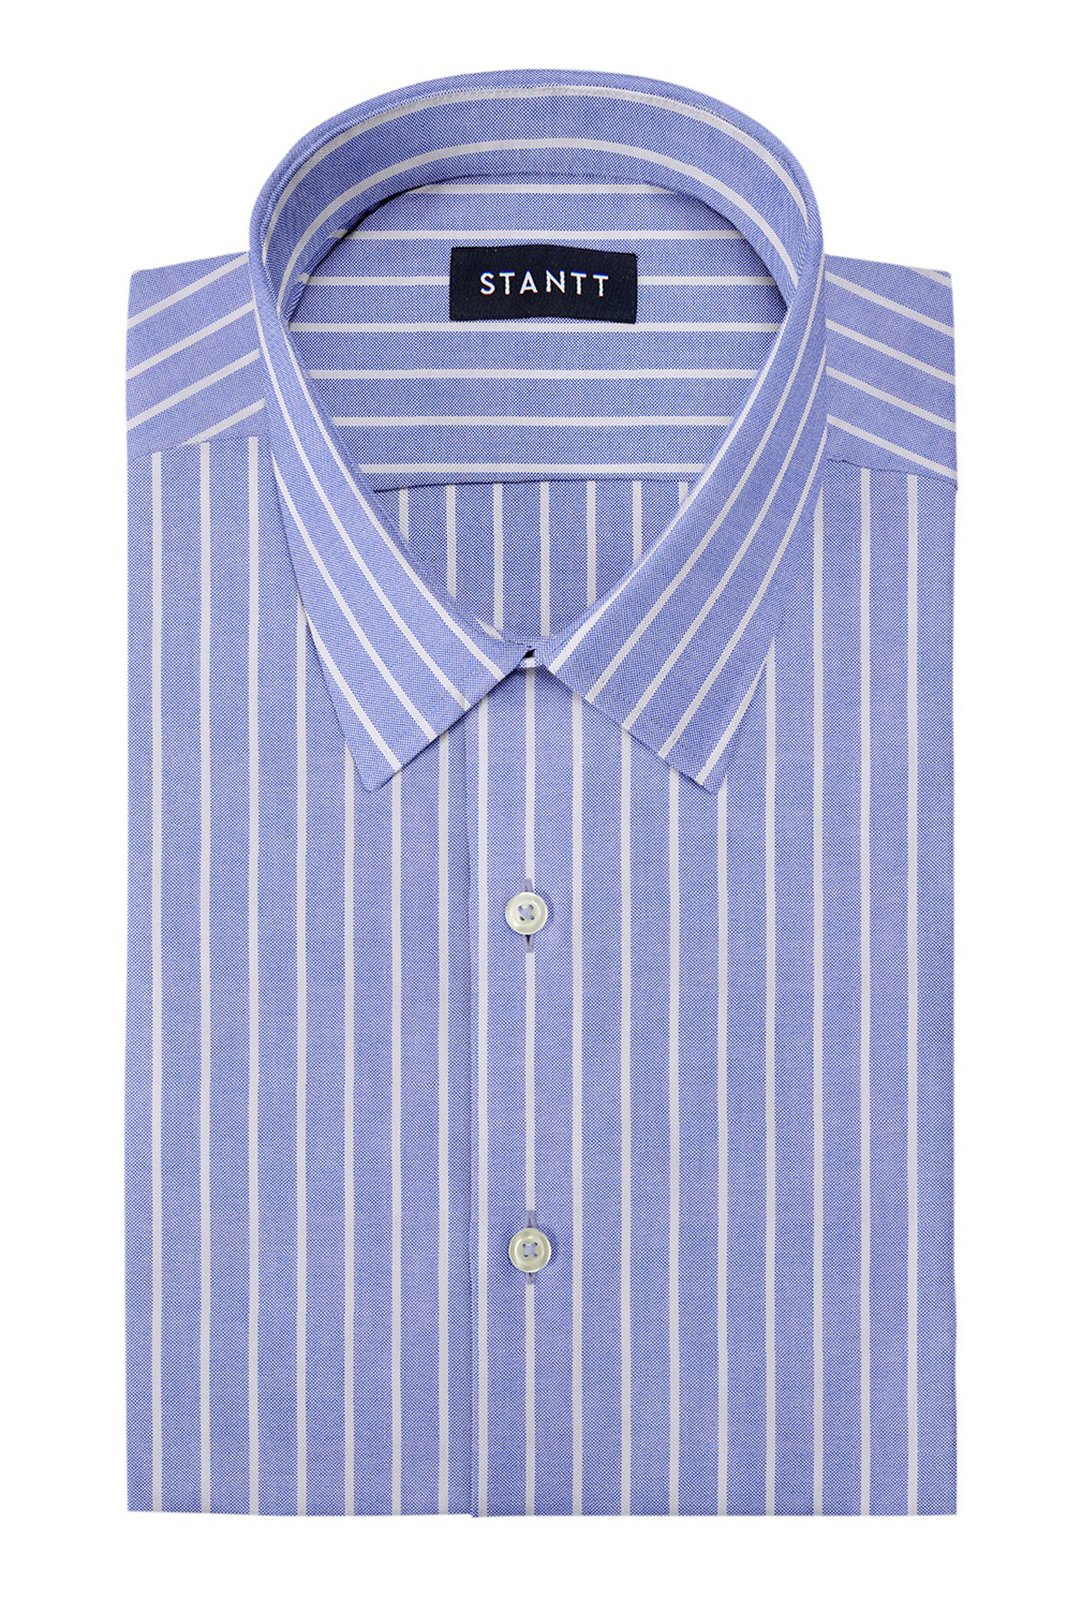 Powder Blue Reverse Stripe Oxford: Semi-Spread Collar, Barrel Cuff